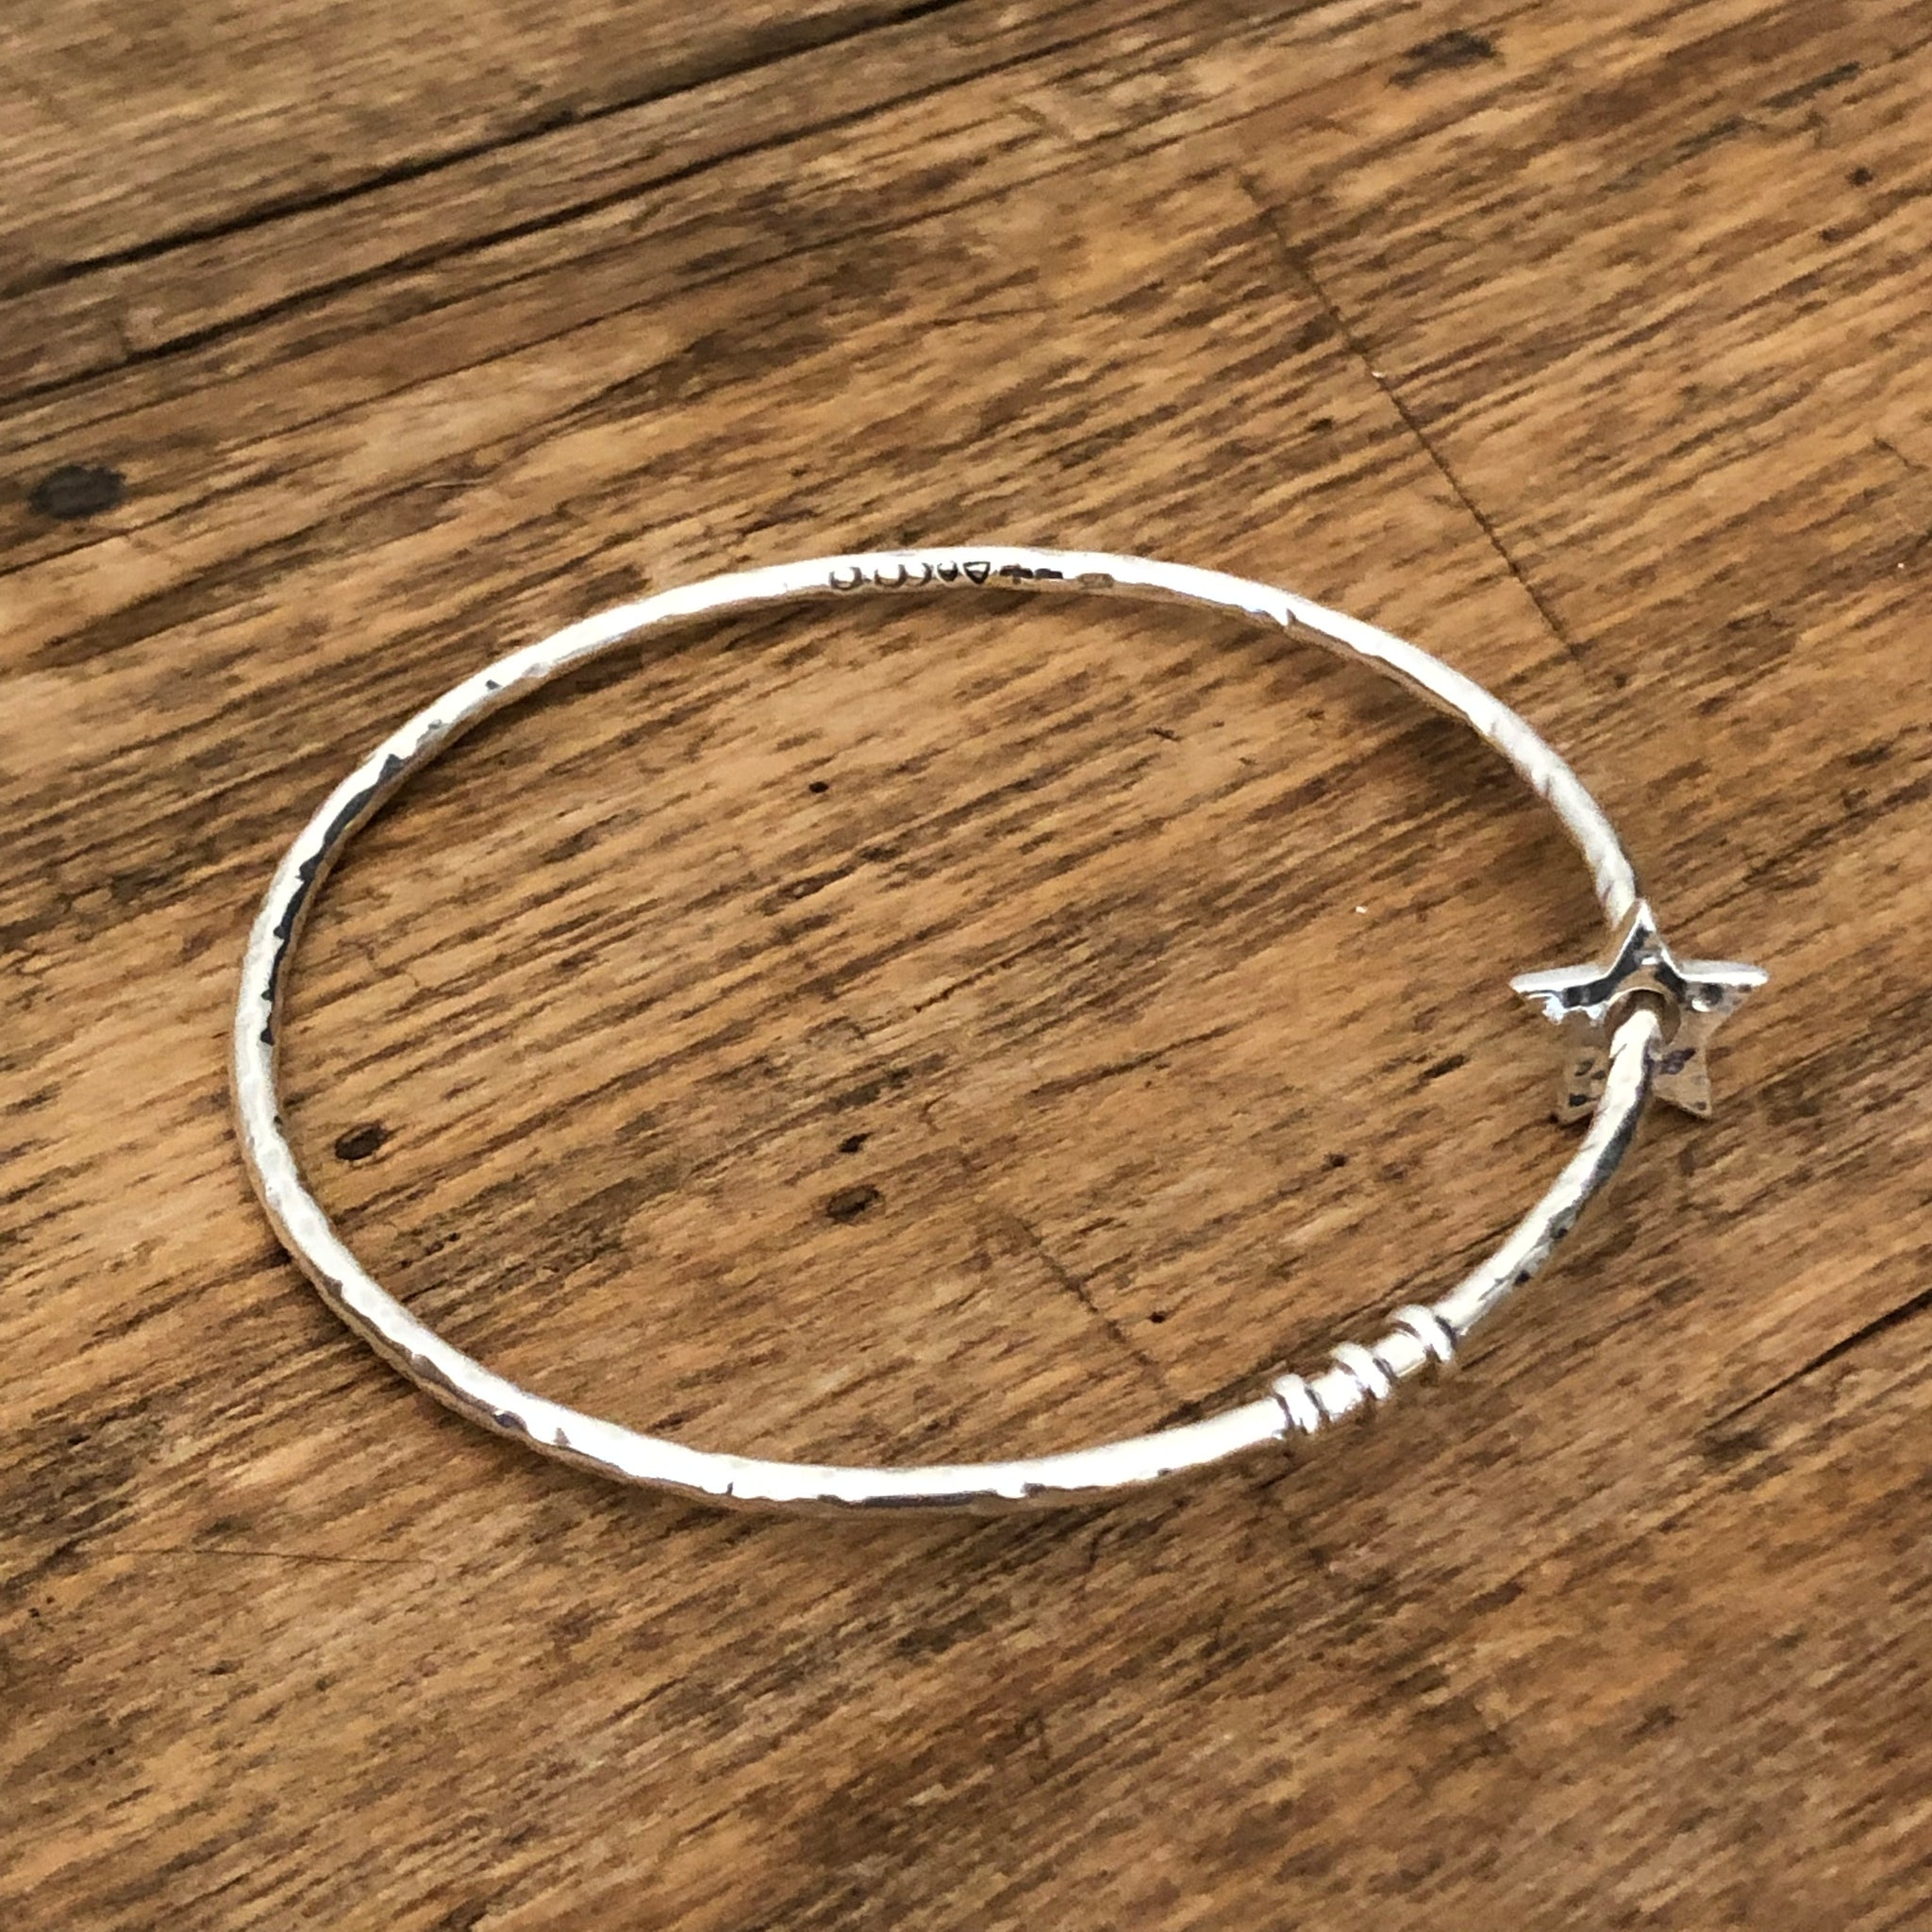 'Shine' Star Bangle